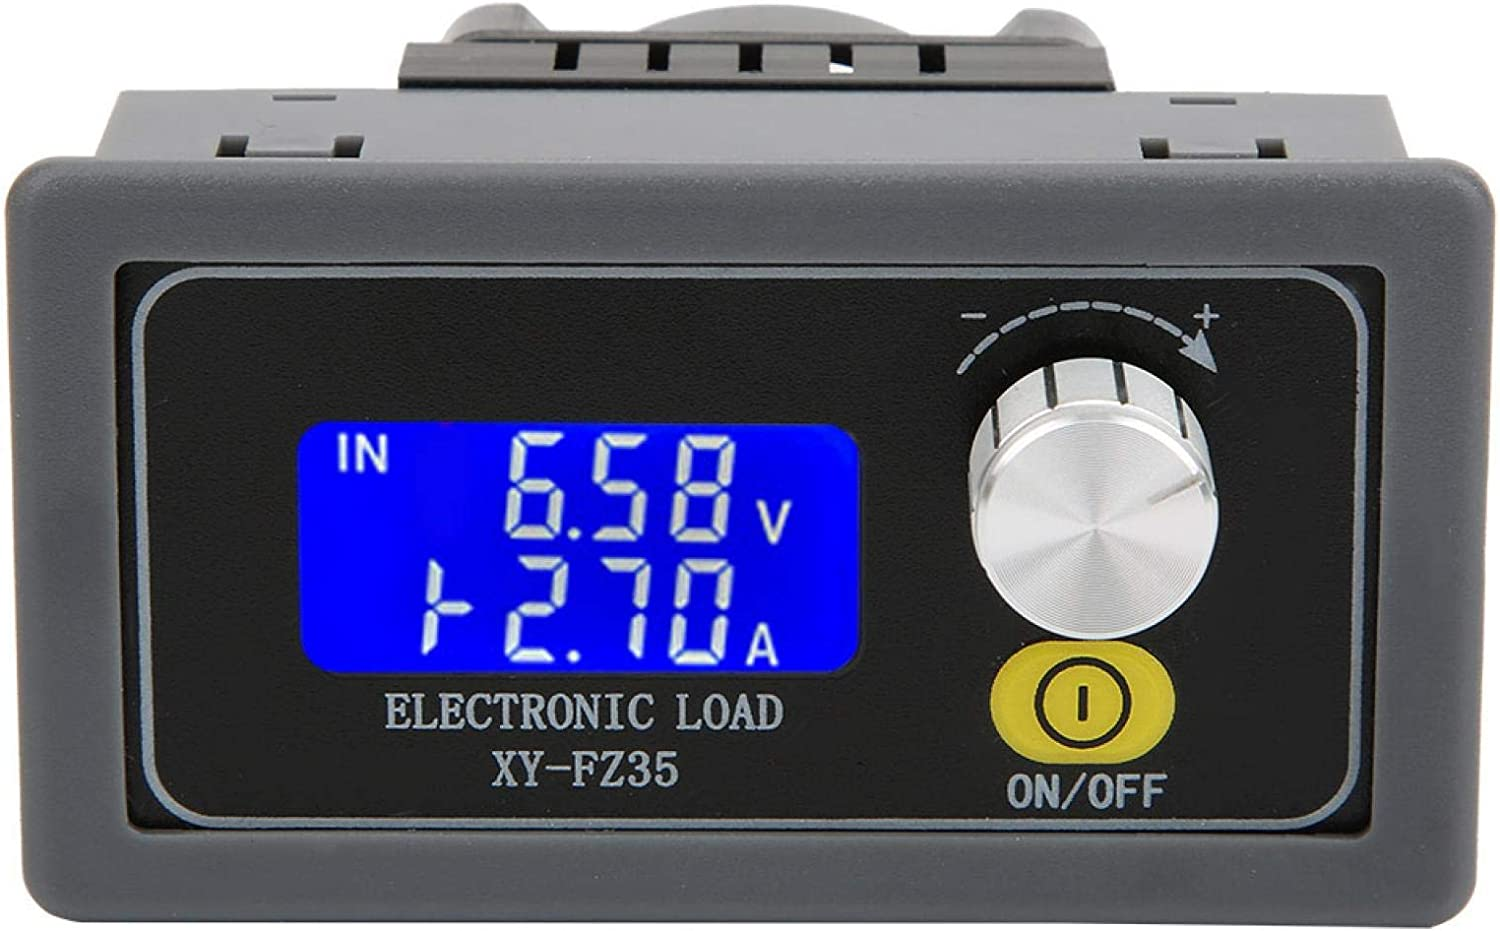 Battery Tester, Constant Load Meter, Battery Balancer, for Constant Current Electronic Load Aging(5A/35W)